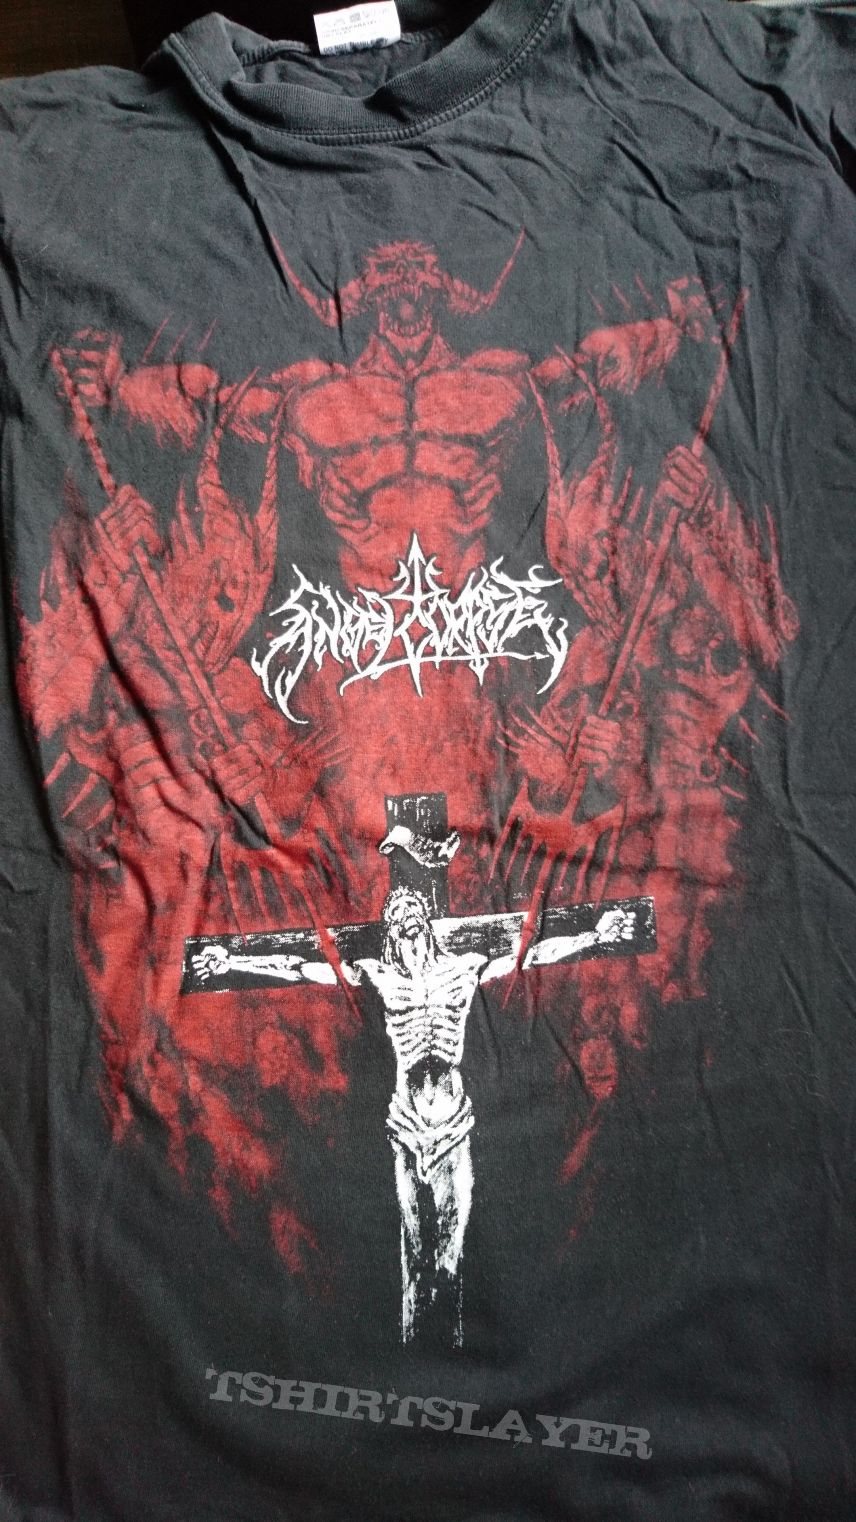 Angelcorpse - Christhammer